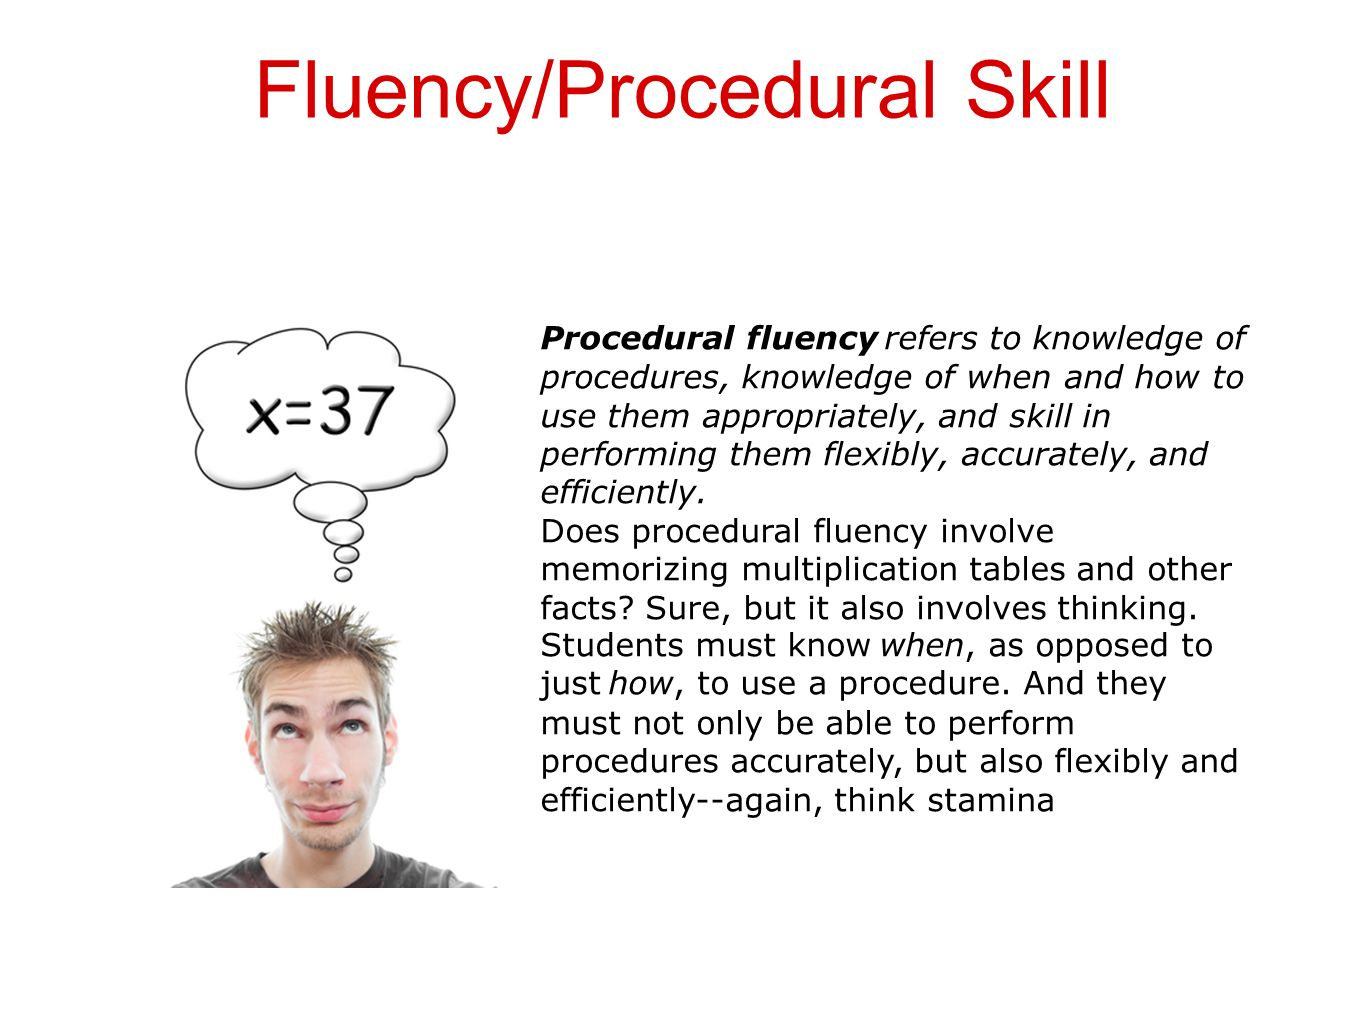 Fluency/Procedural Skill Procedural fluency refers to knowledge of procedures, knowledge of when and how to use them appropriately, and skill in perfo